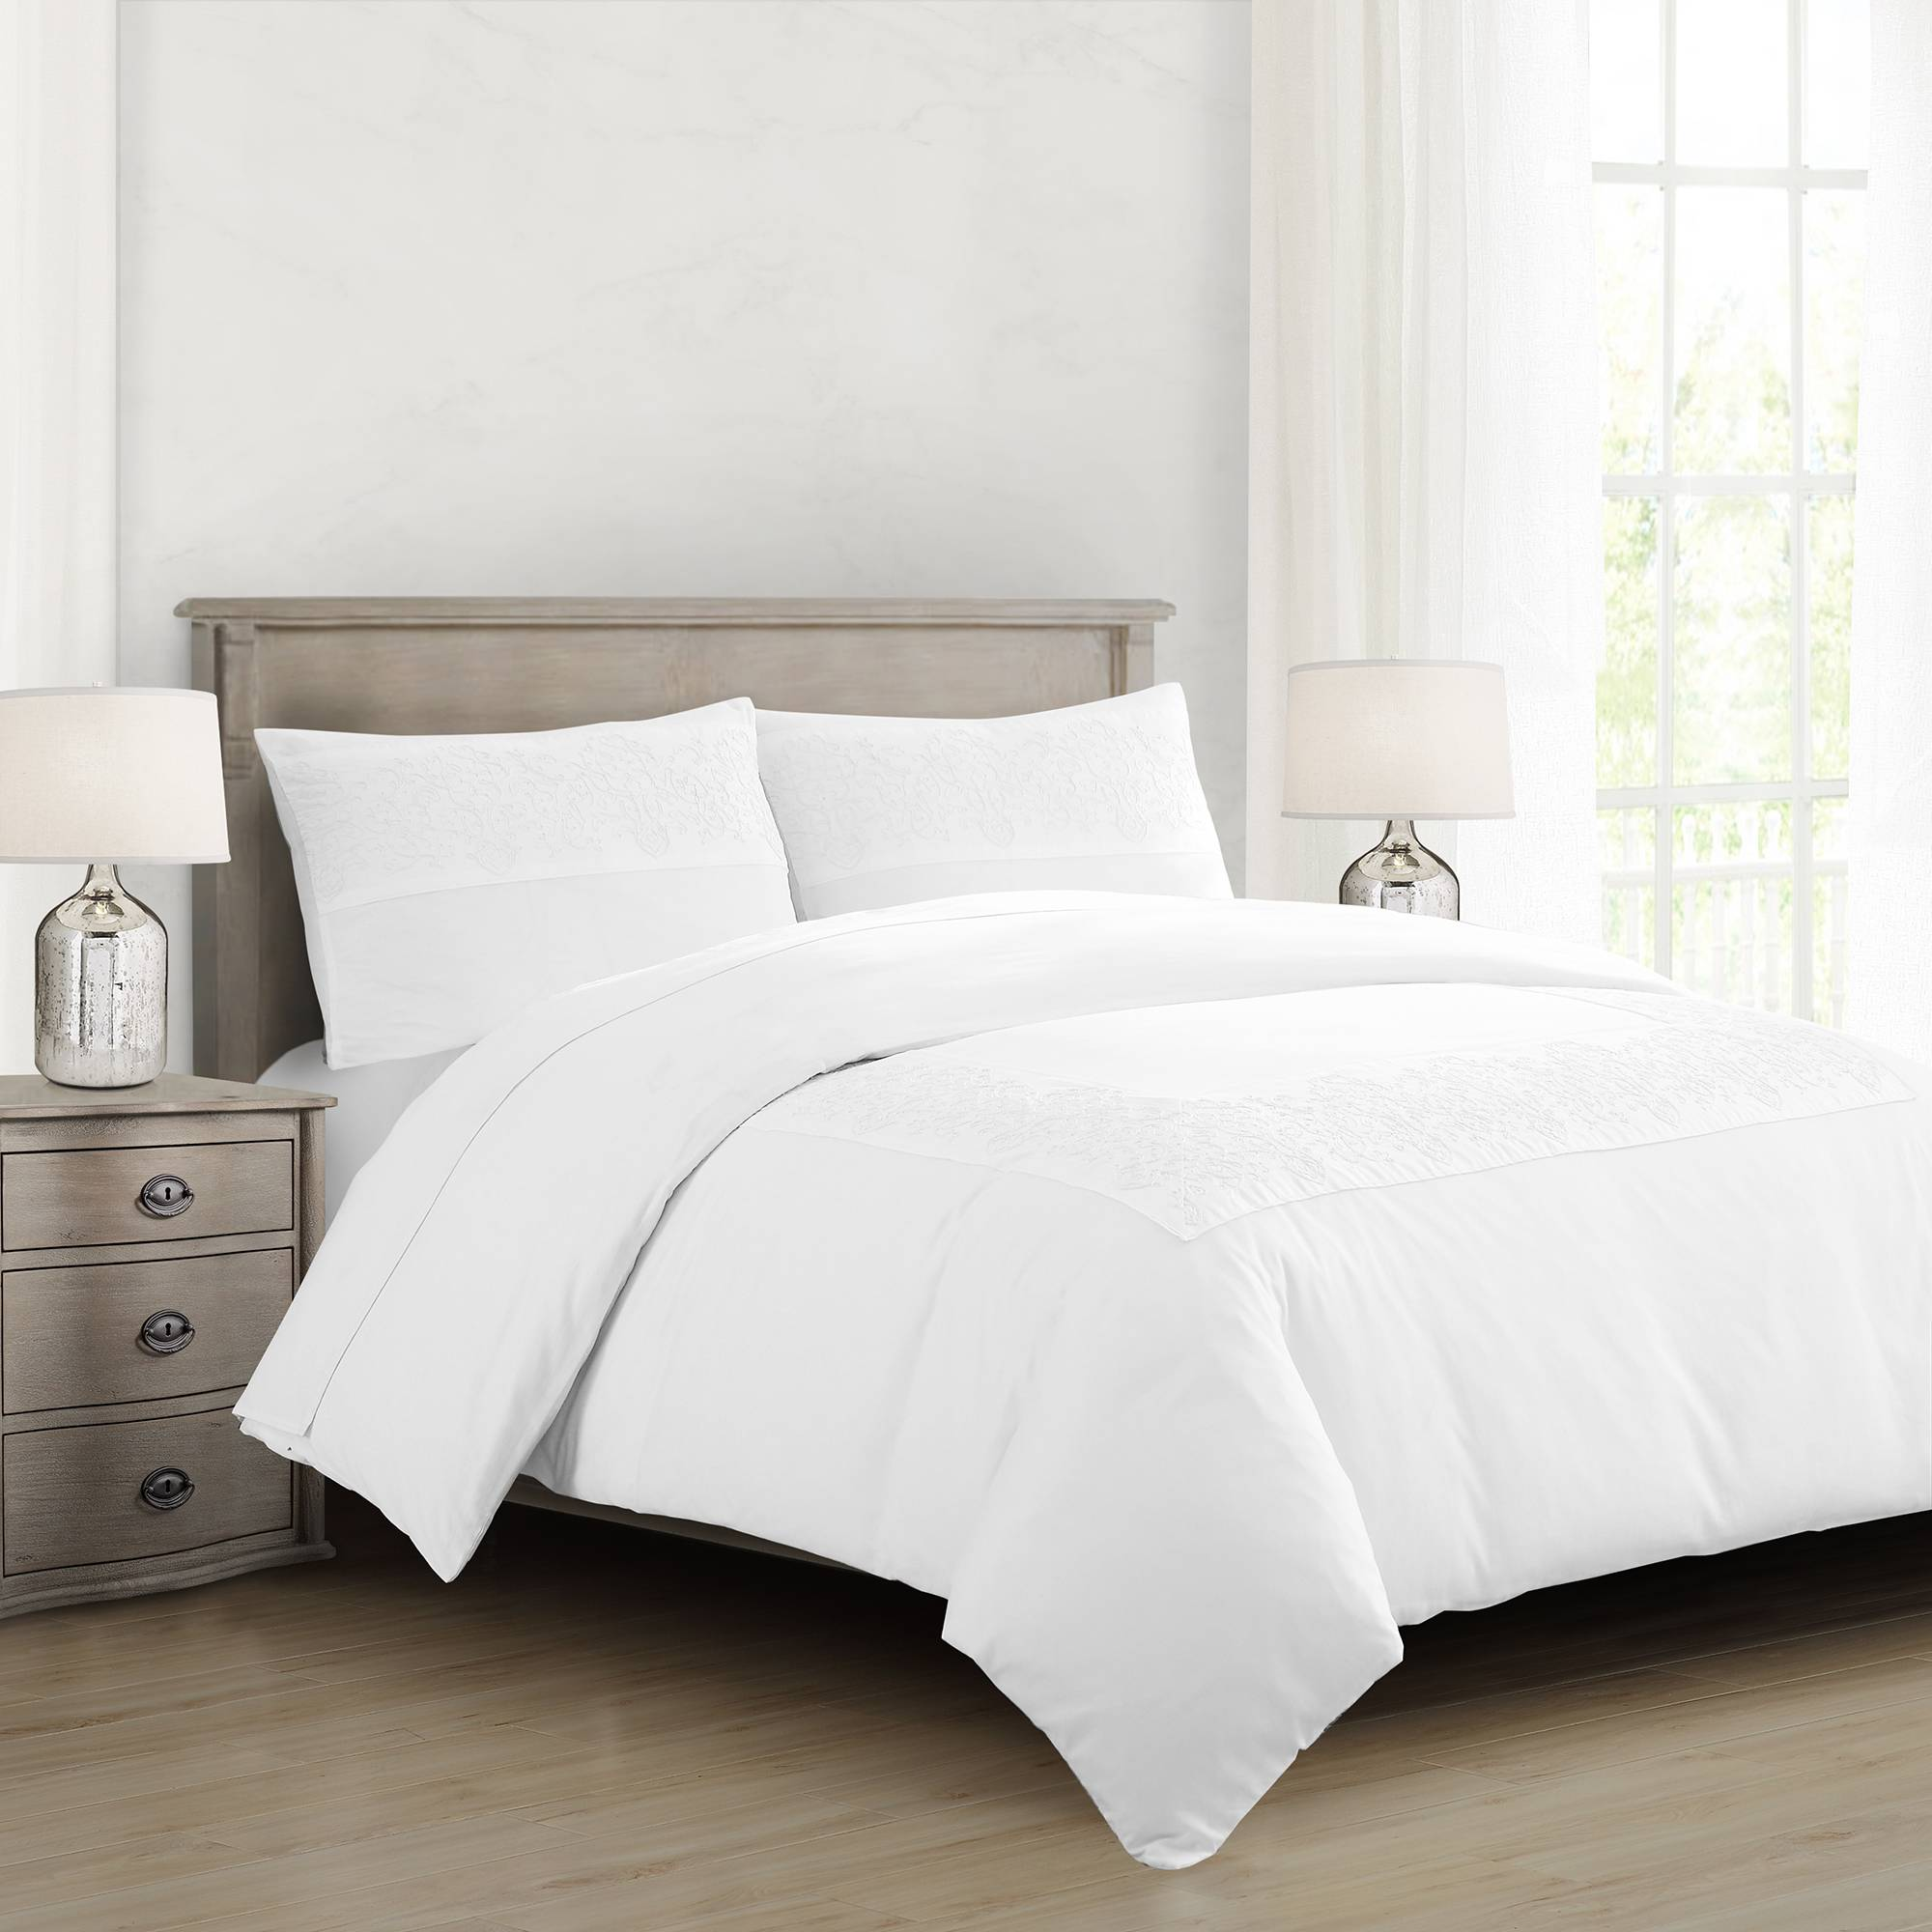 Investing in high-quality bedding can have a huge impact and freshen up a room. Bed Bath & Beyond has luxurious pieces at low price points, such as $100 for this comforter set.